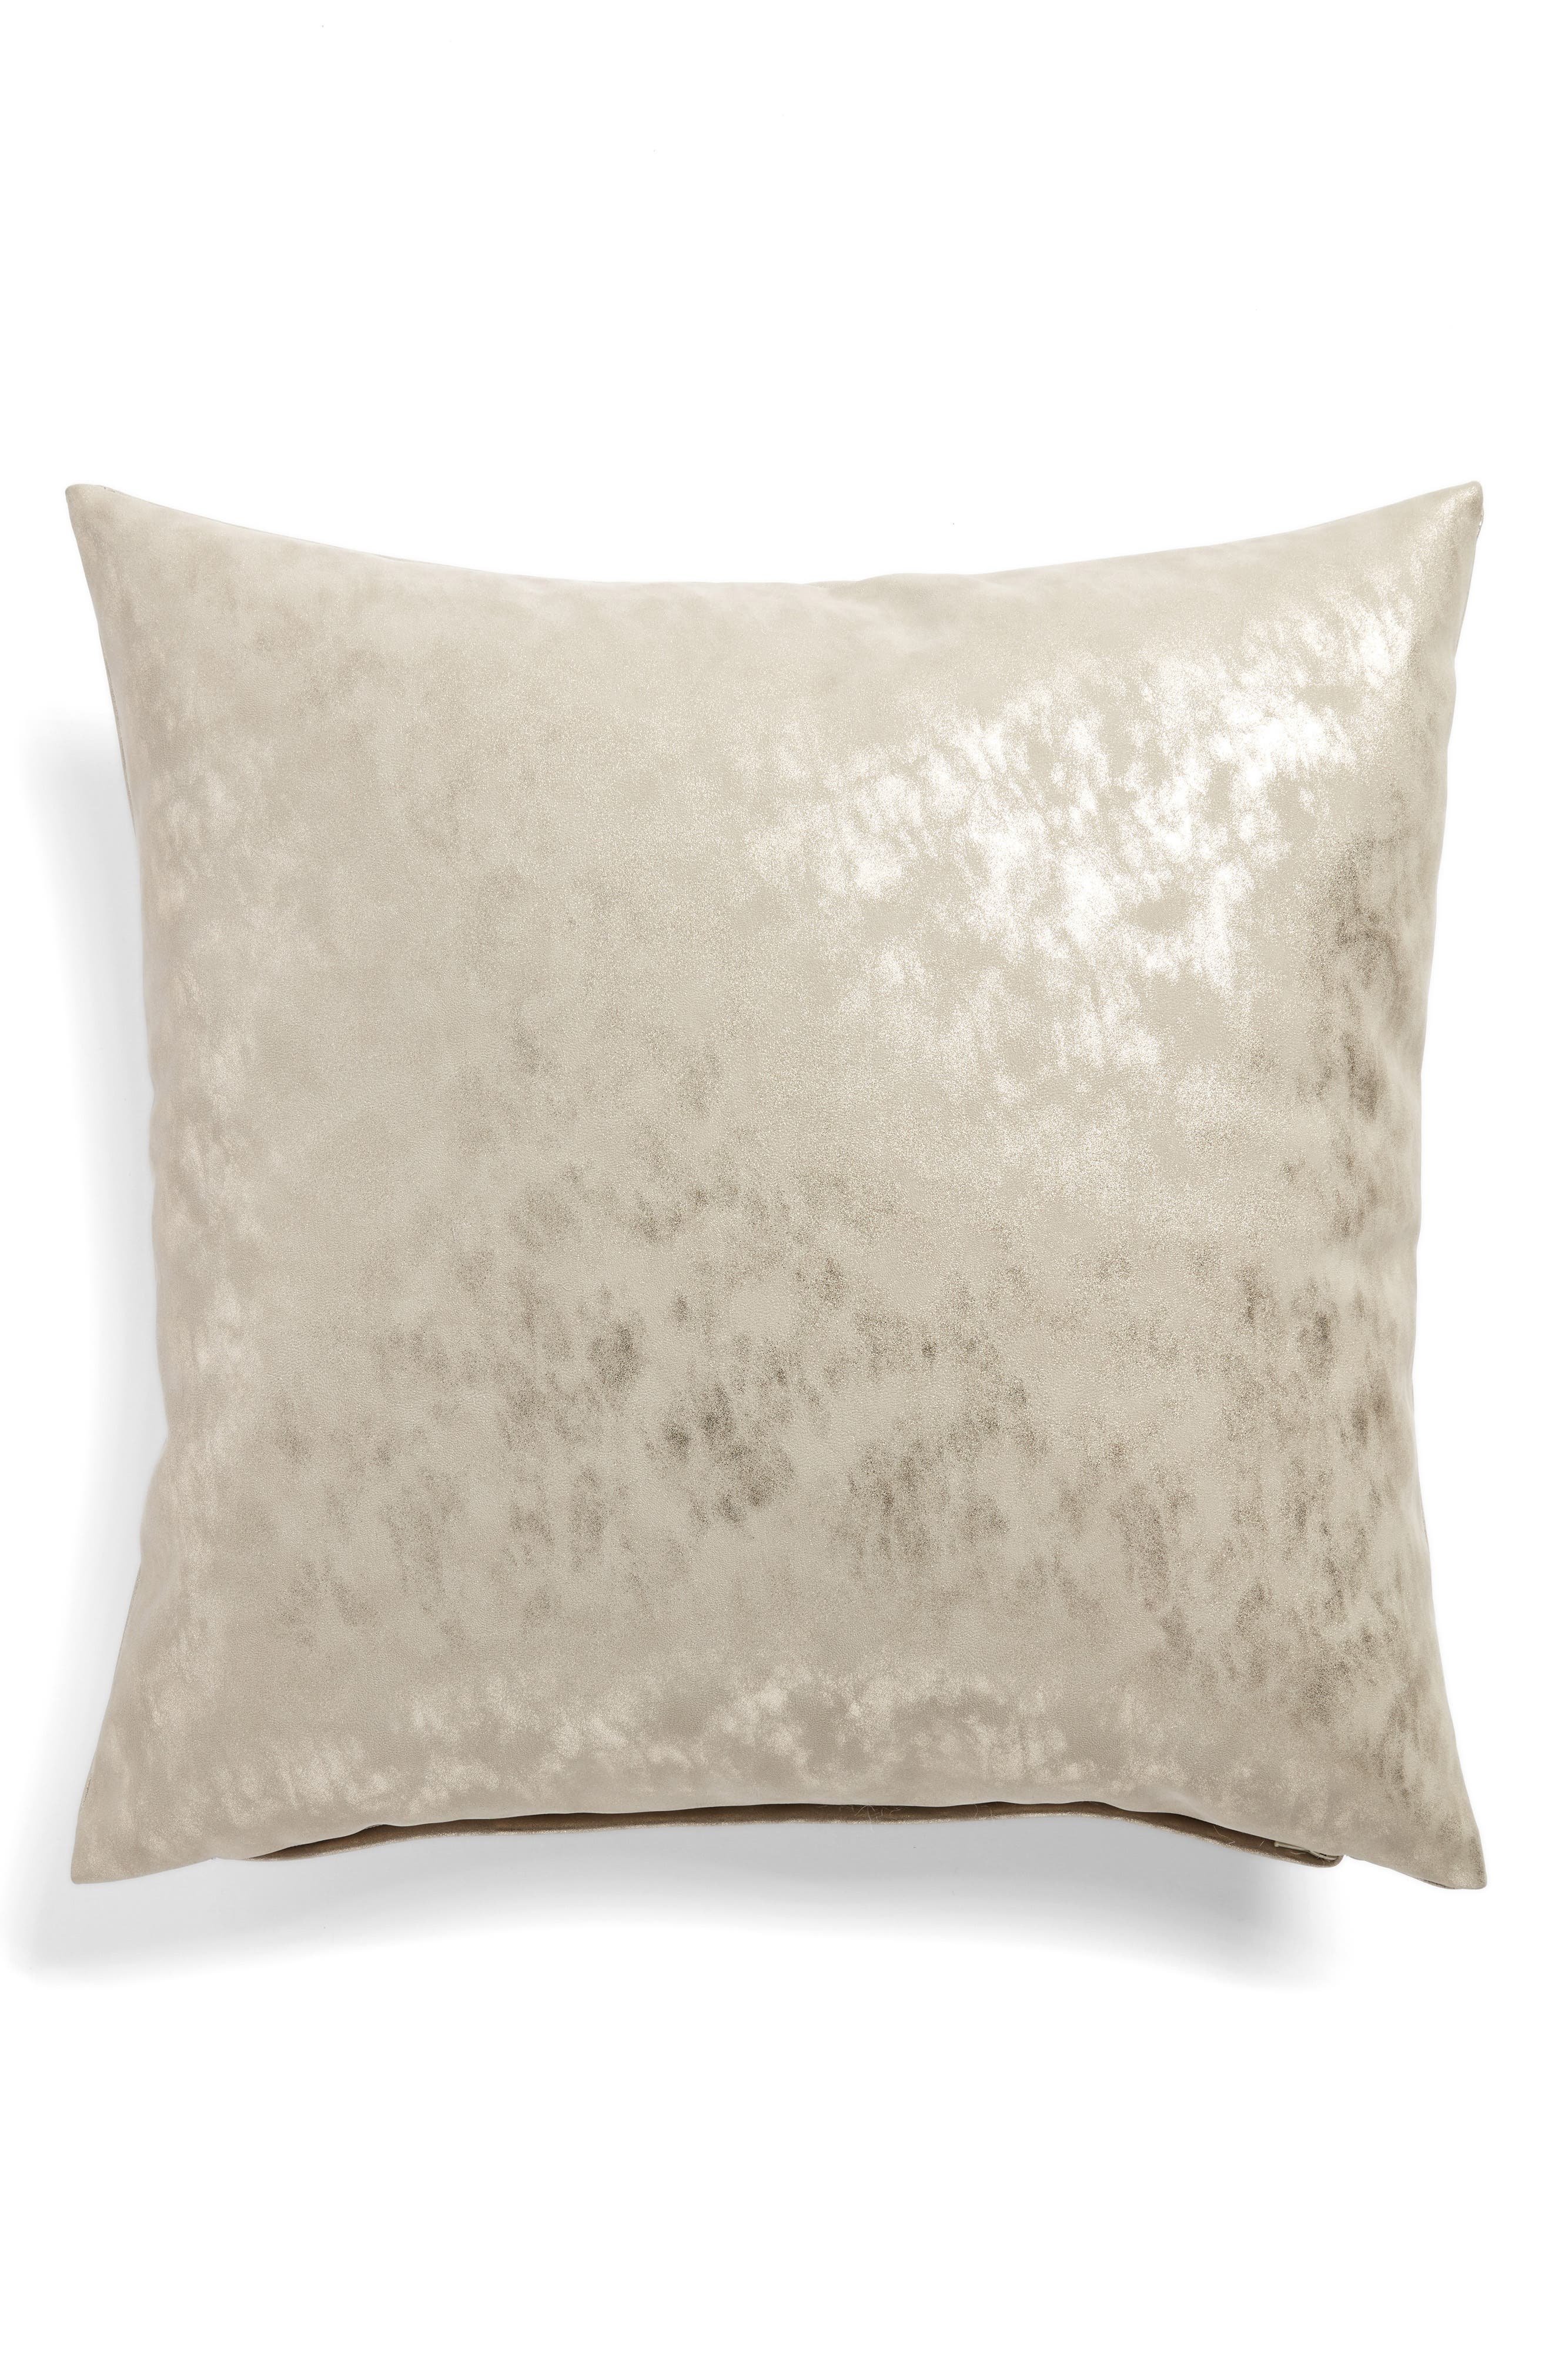 Shimmer Accent Pillow,                             Alternate thumbnail 2, color,                             GREY CHIME